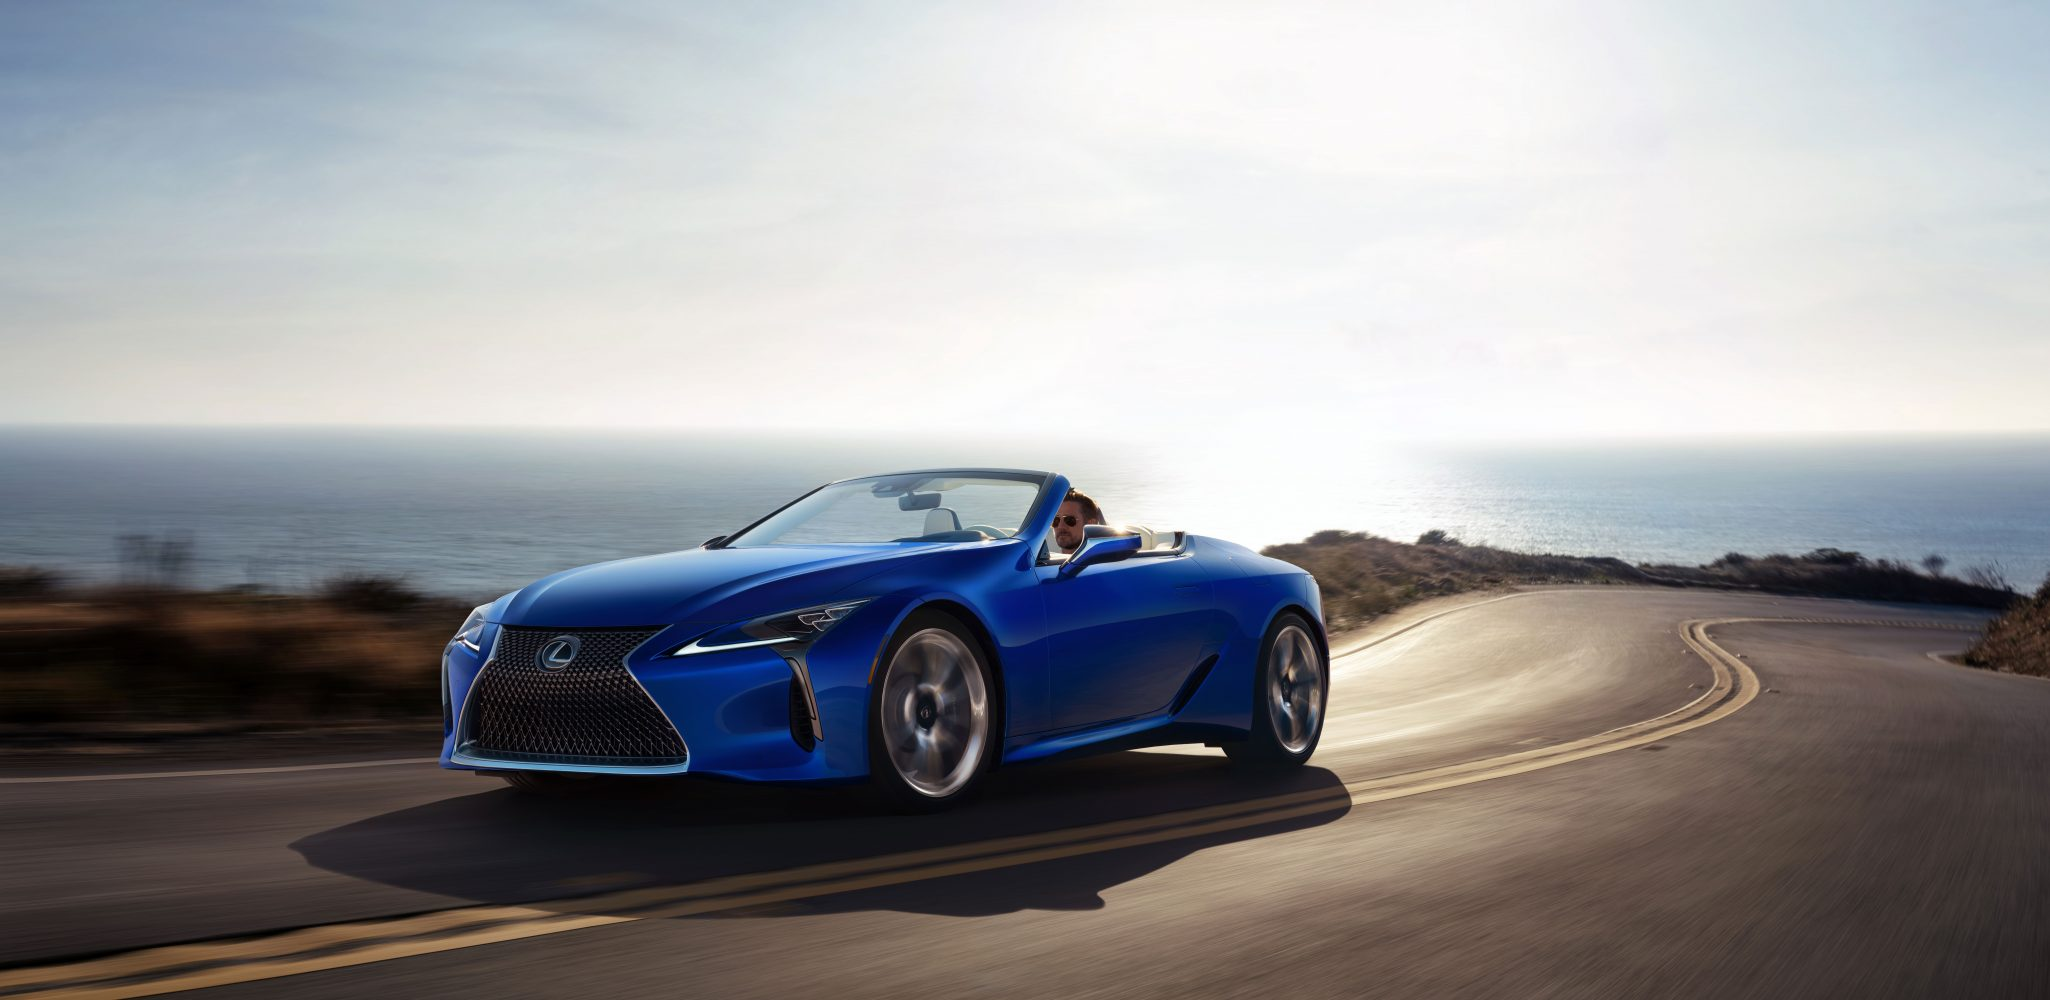 2021 Lexus LC 500 Convertible Makes Global Debut at 2019 Los Angeles International Auto Show